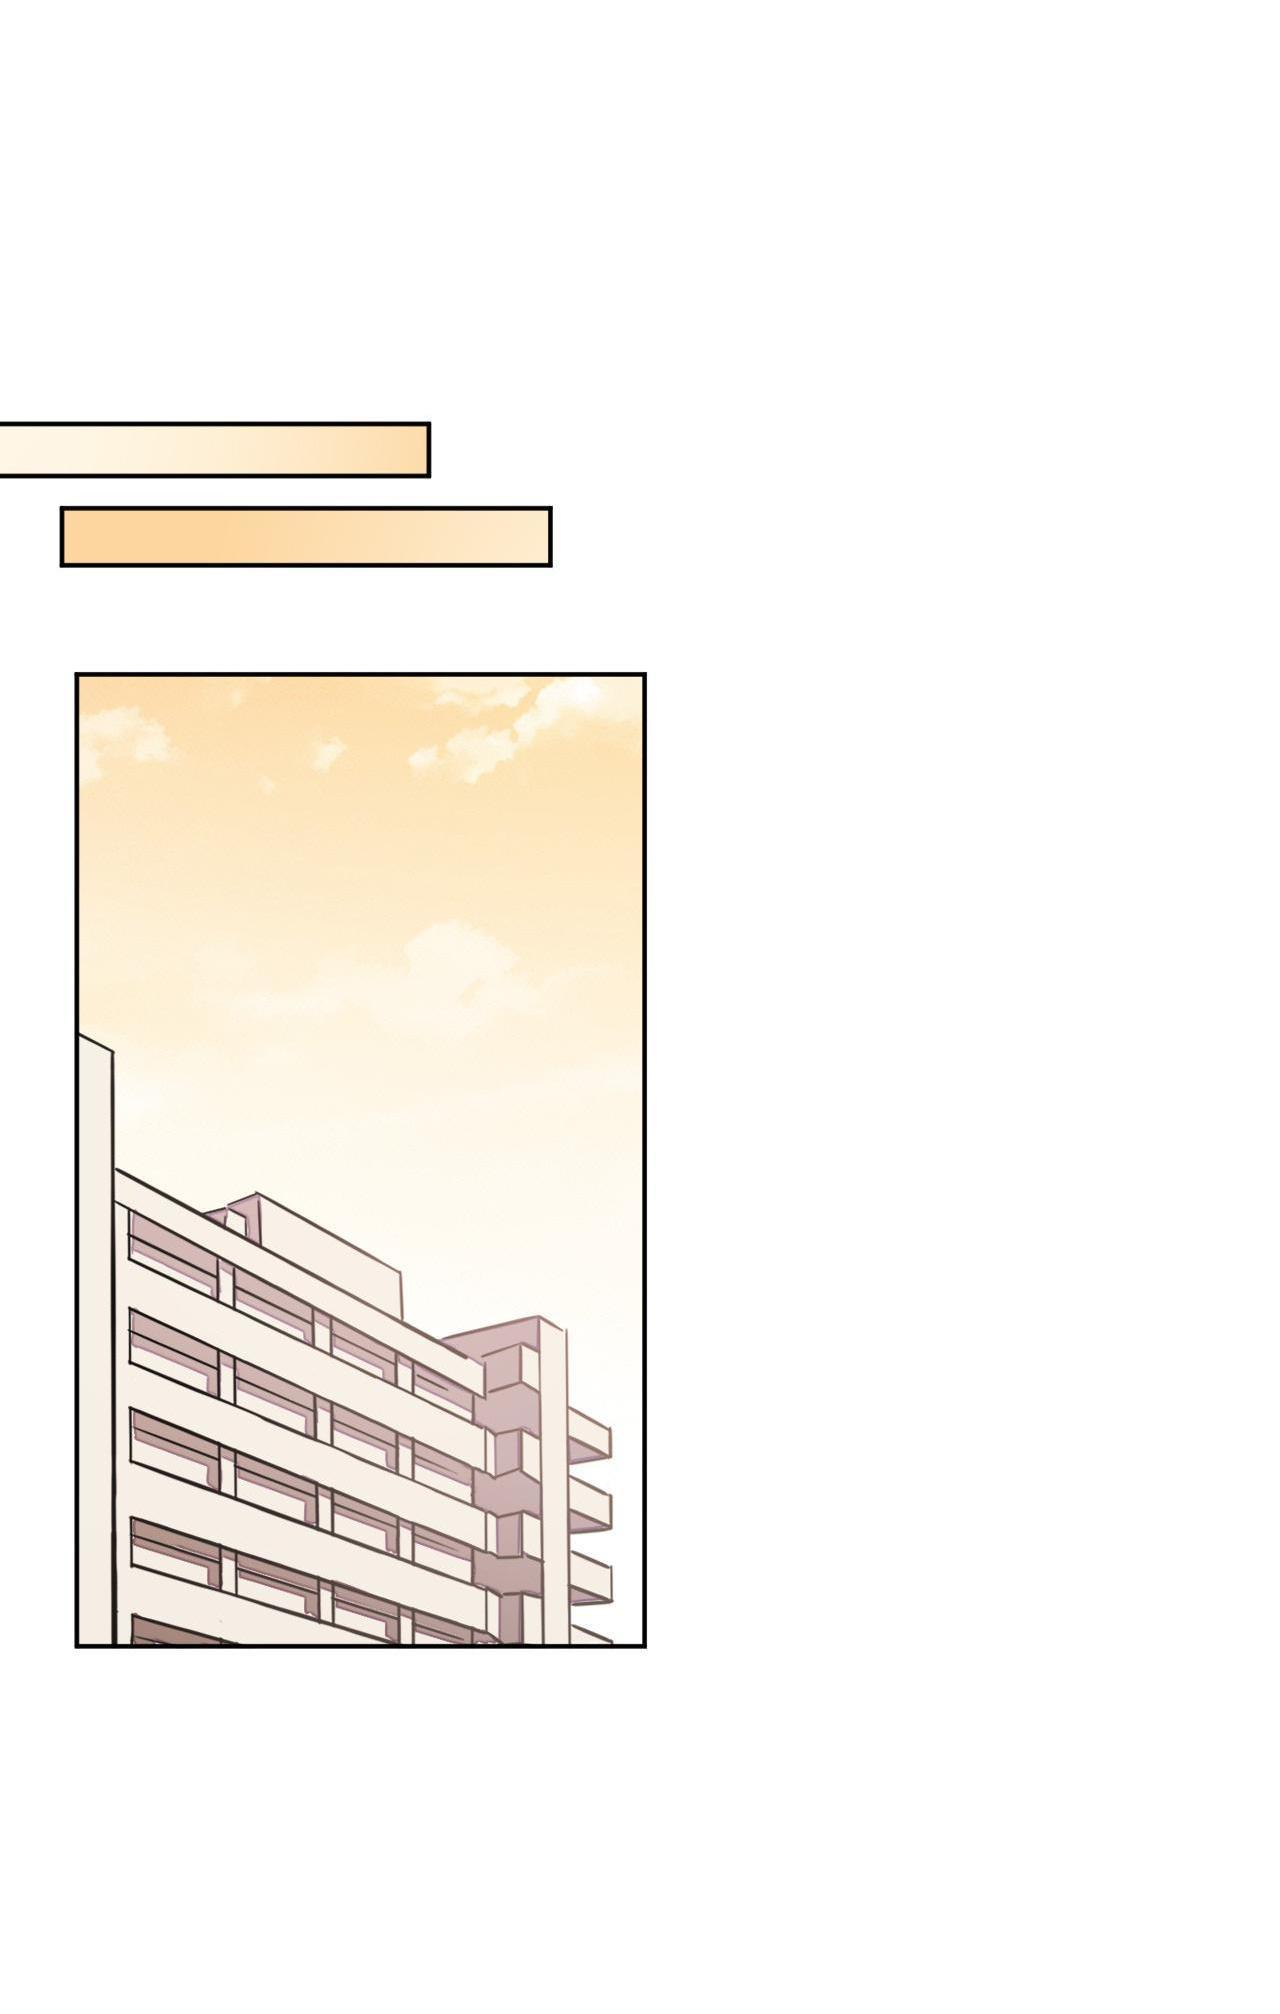 God Gave Me This Awkward Superpower, What Is It For? Chapter 21: Childhood Friend Vs Cell Phone page 31 - Mangakakalots.com